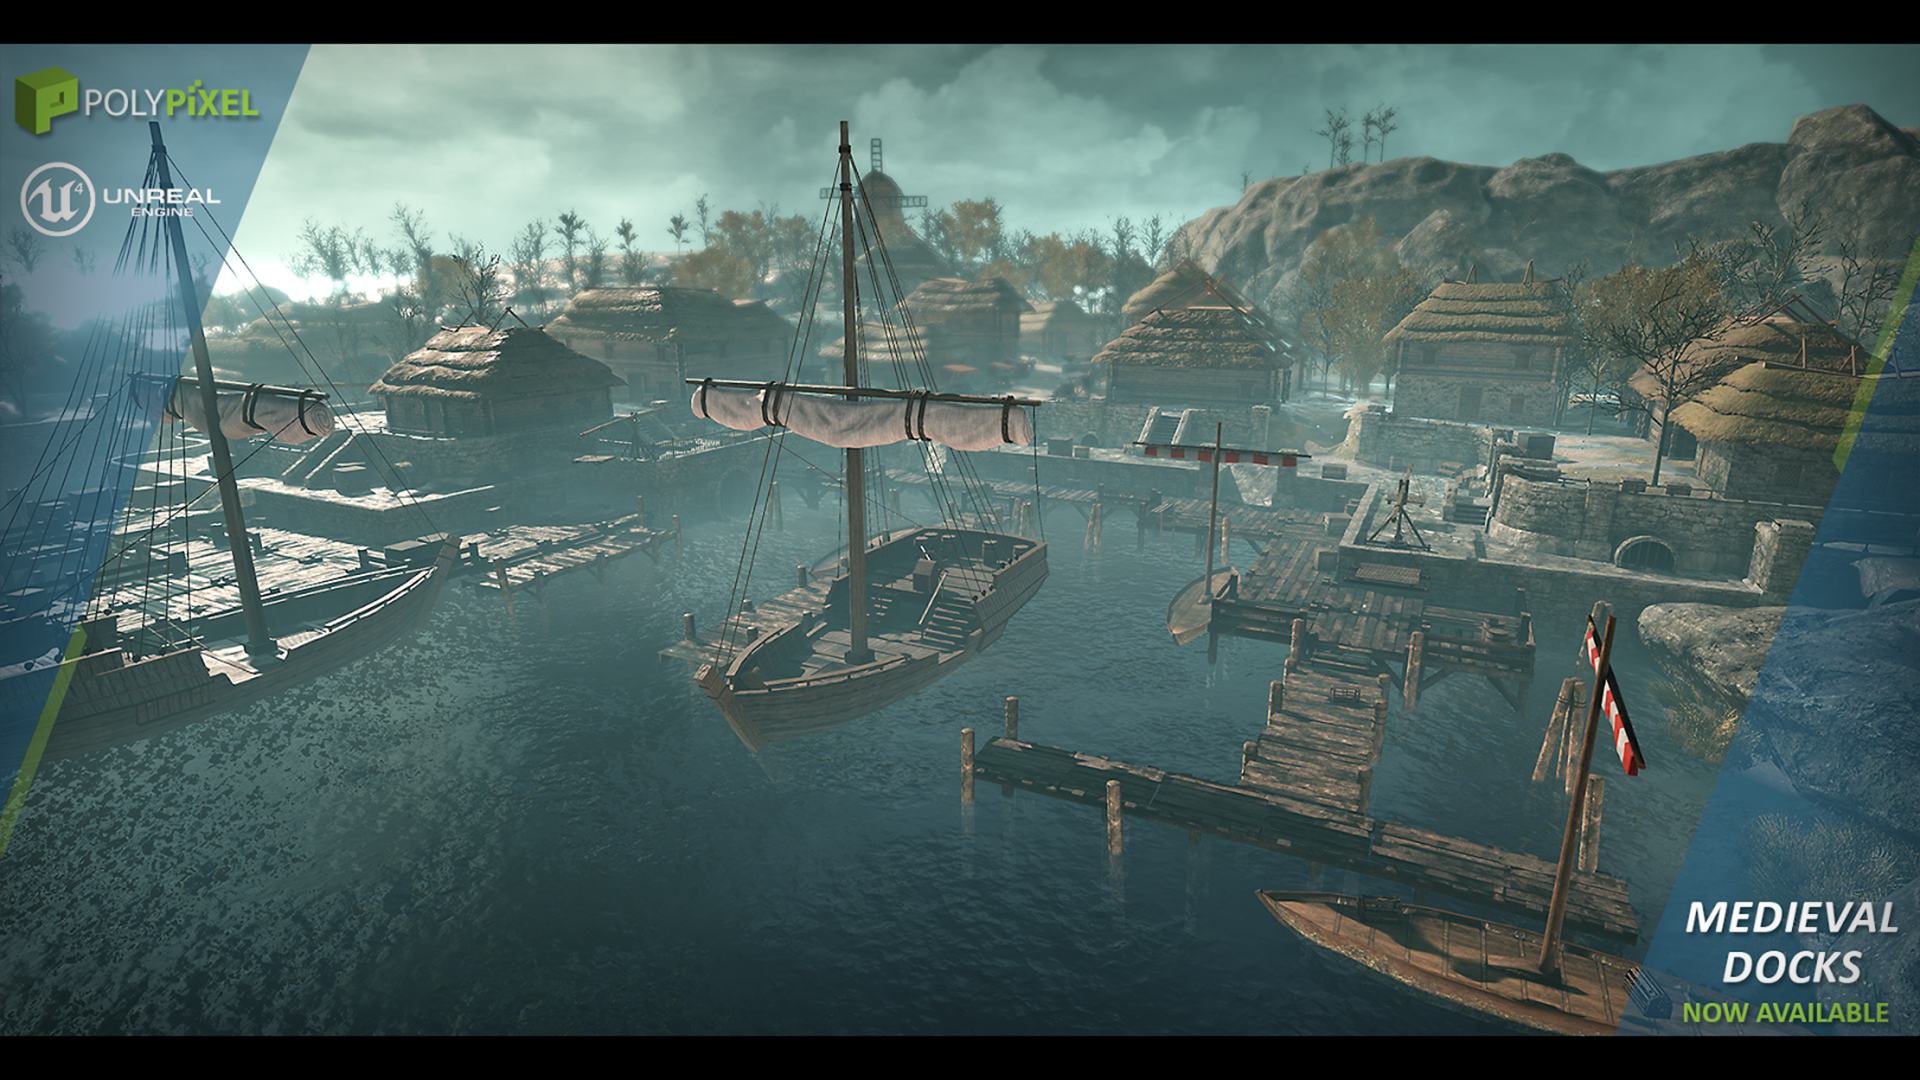 Medieval Docks By Polypixel In Environments Ue4 Marketplace